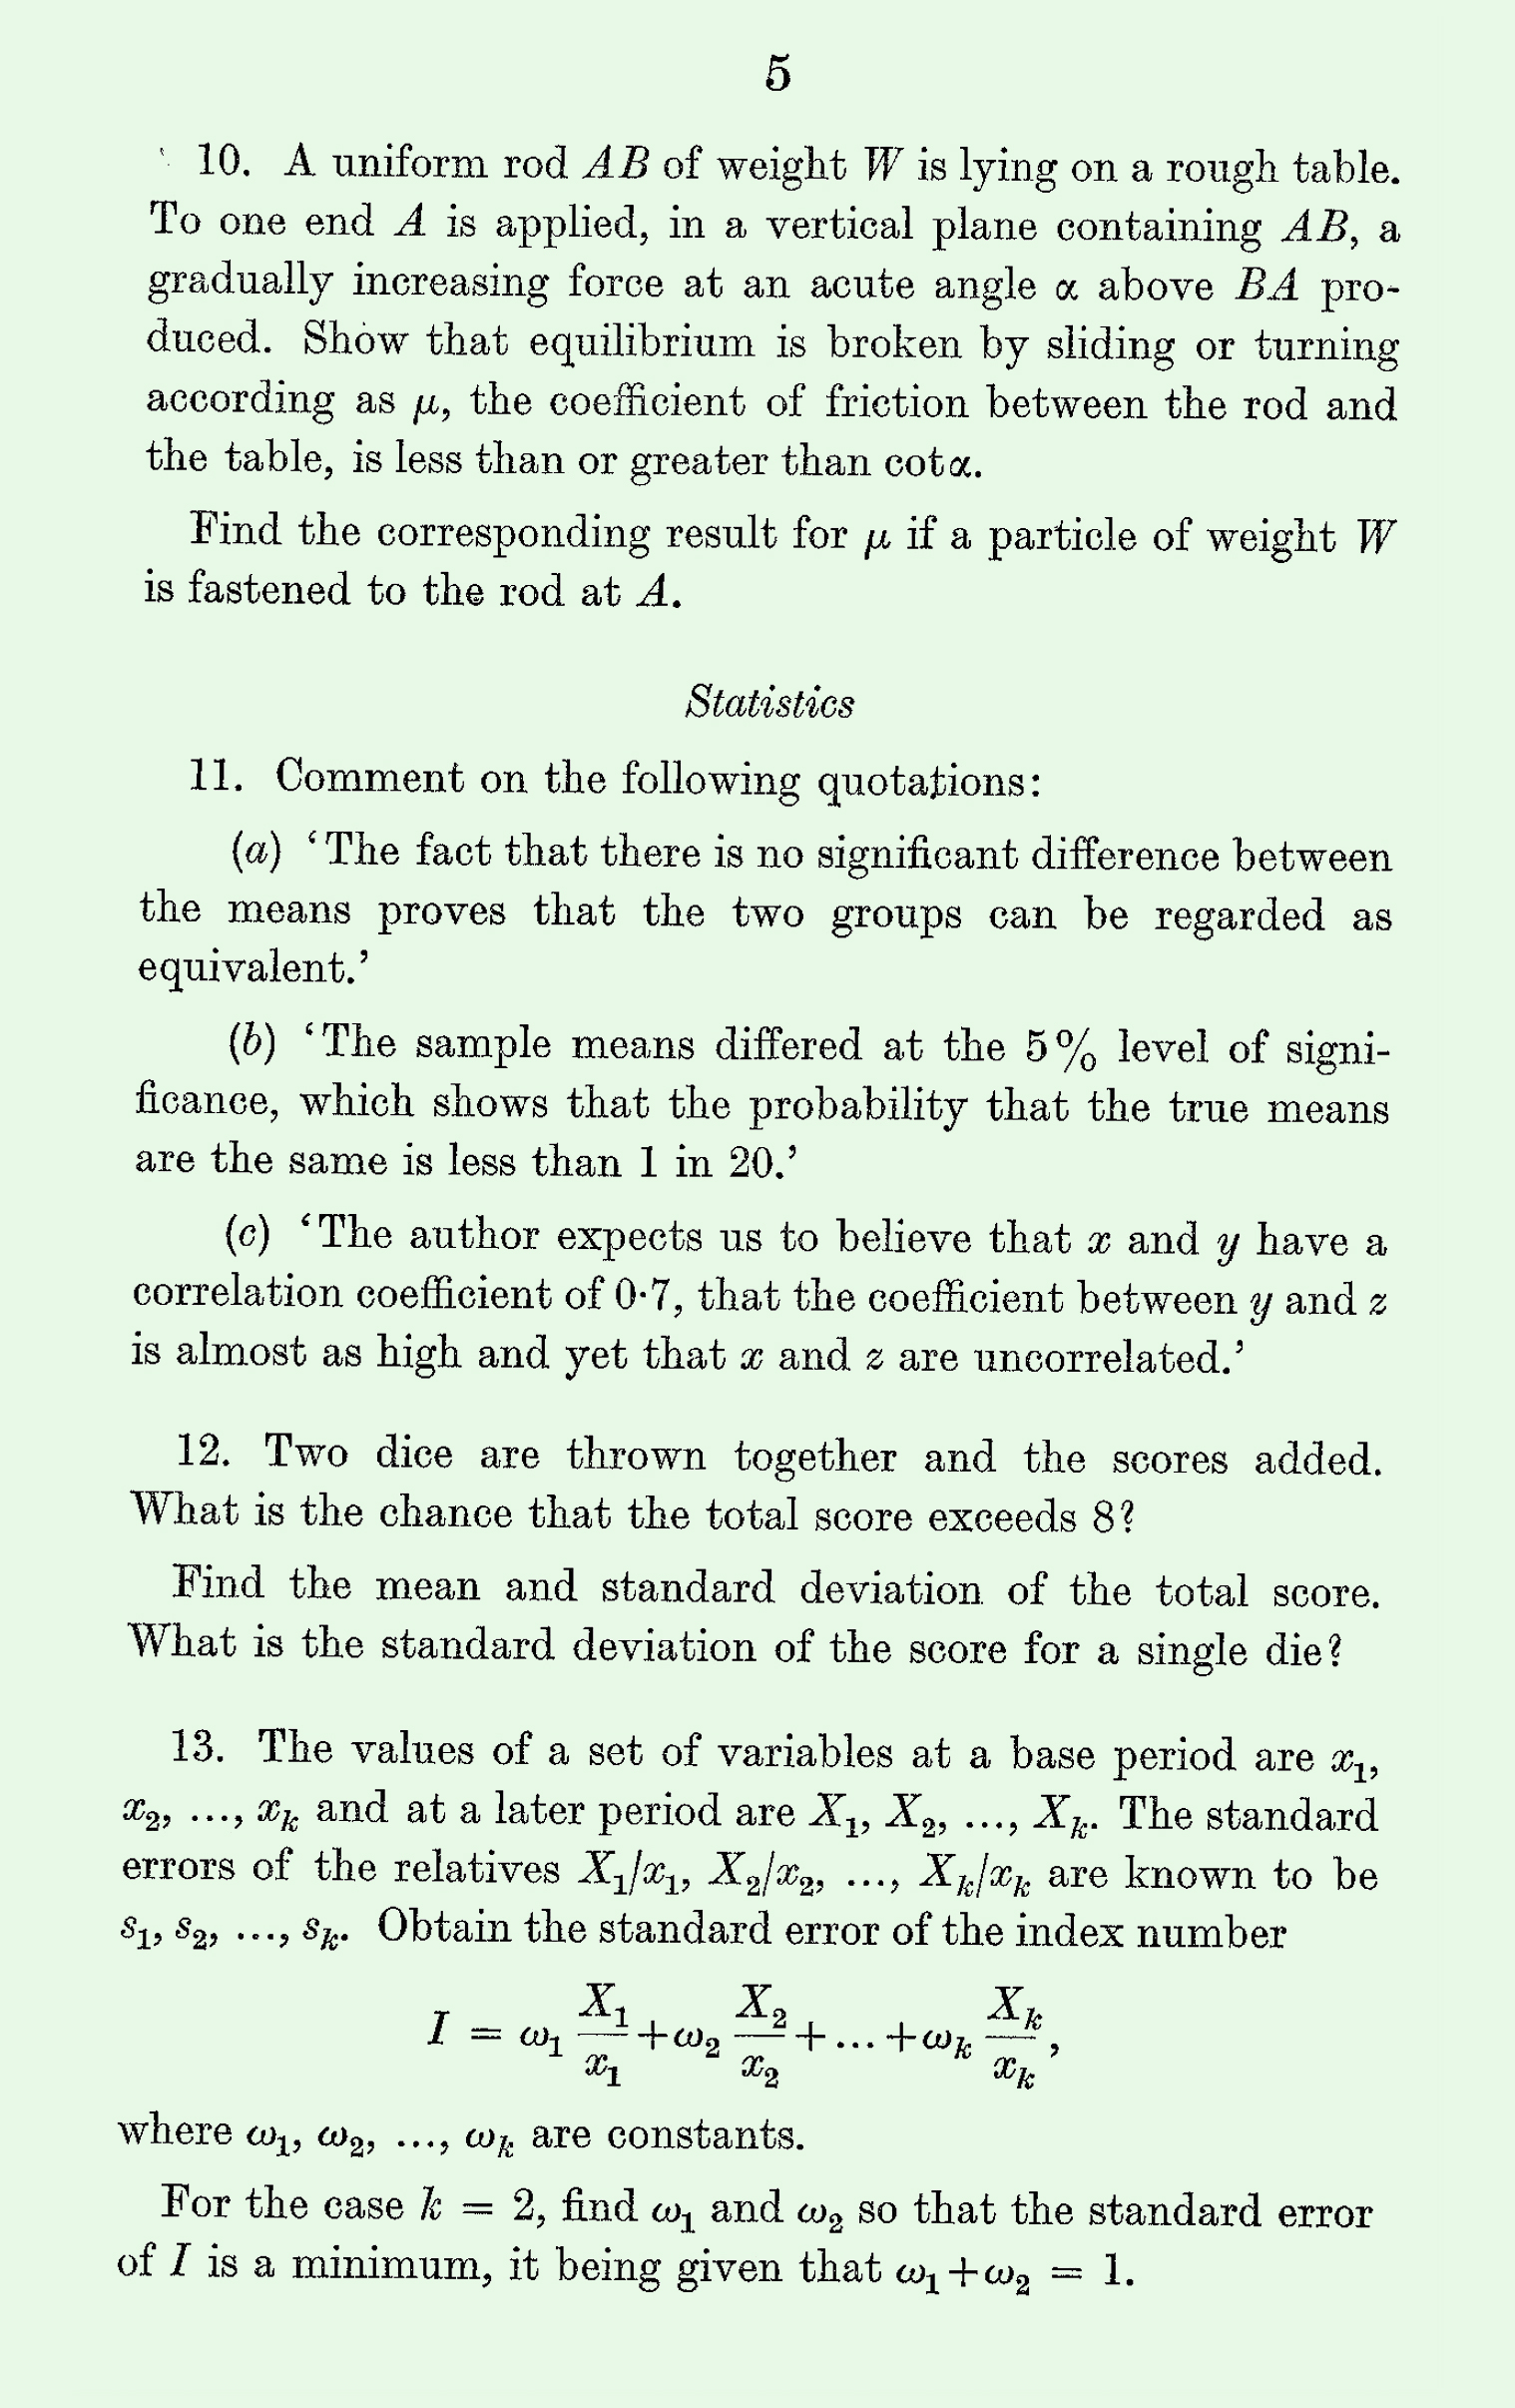 1963 Applied Mathematics A Level & S Level Paper I page 5